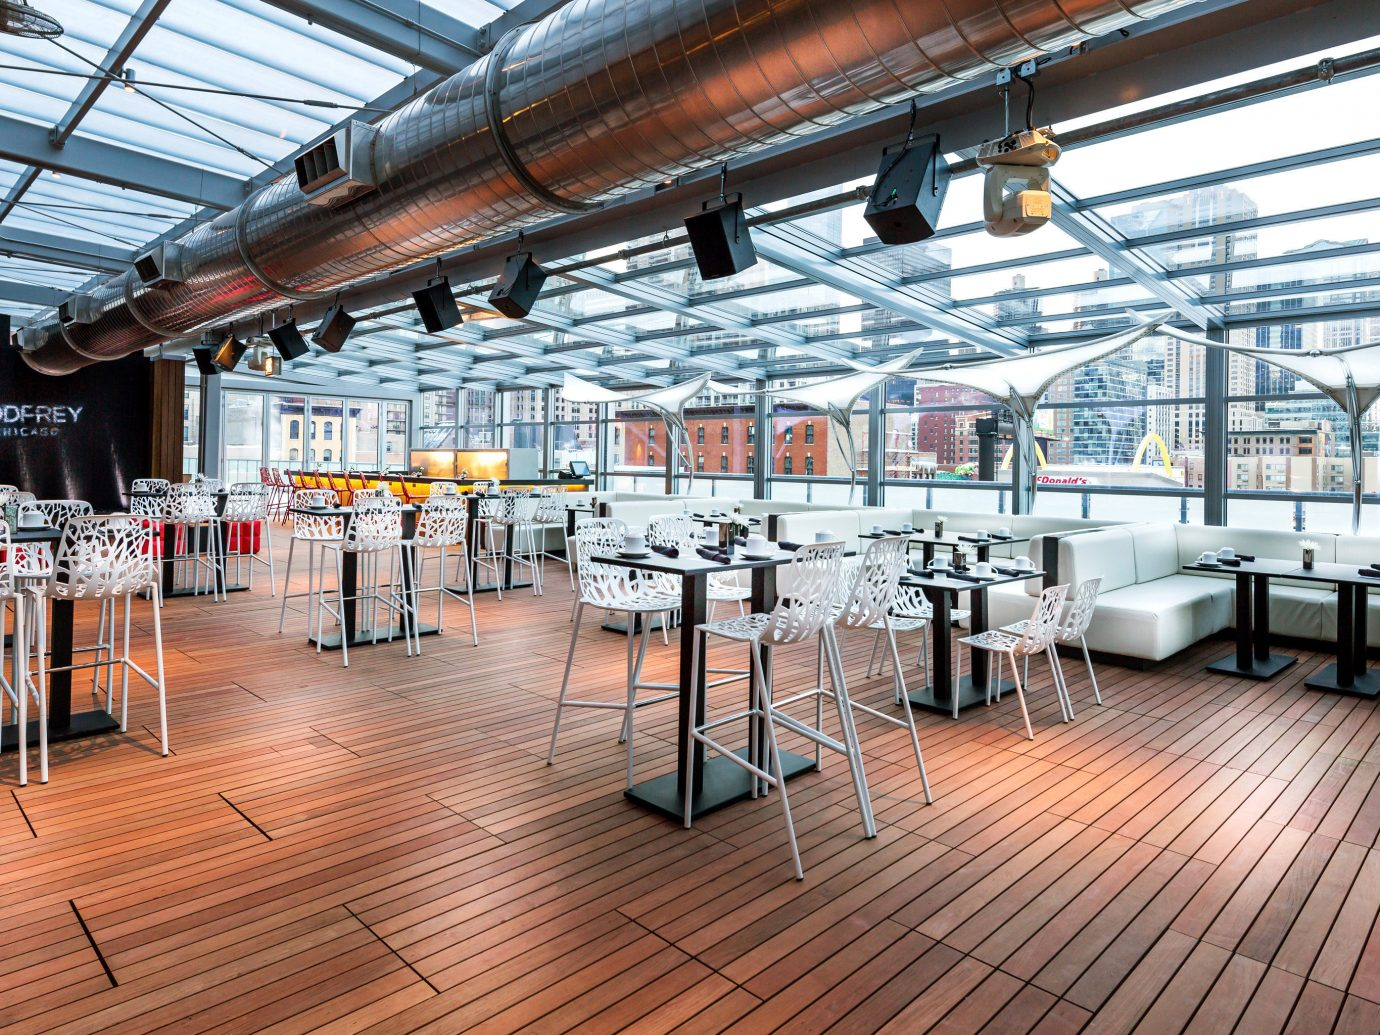 Balcony Boutique Dining Drink Eat Hip Hotels Modern Patio Rooftop Terrace Trip Ideas indoor floor building ceiling wood interior design outdoor structure area